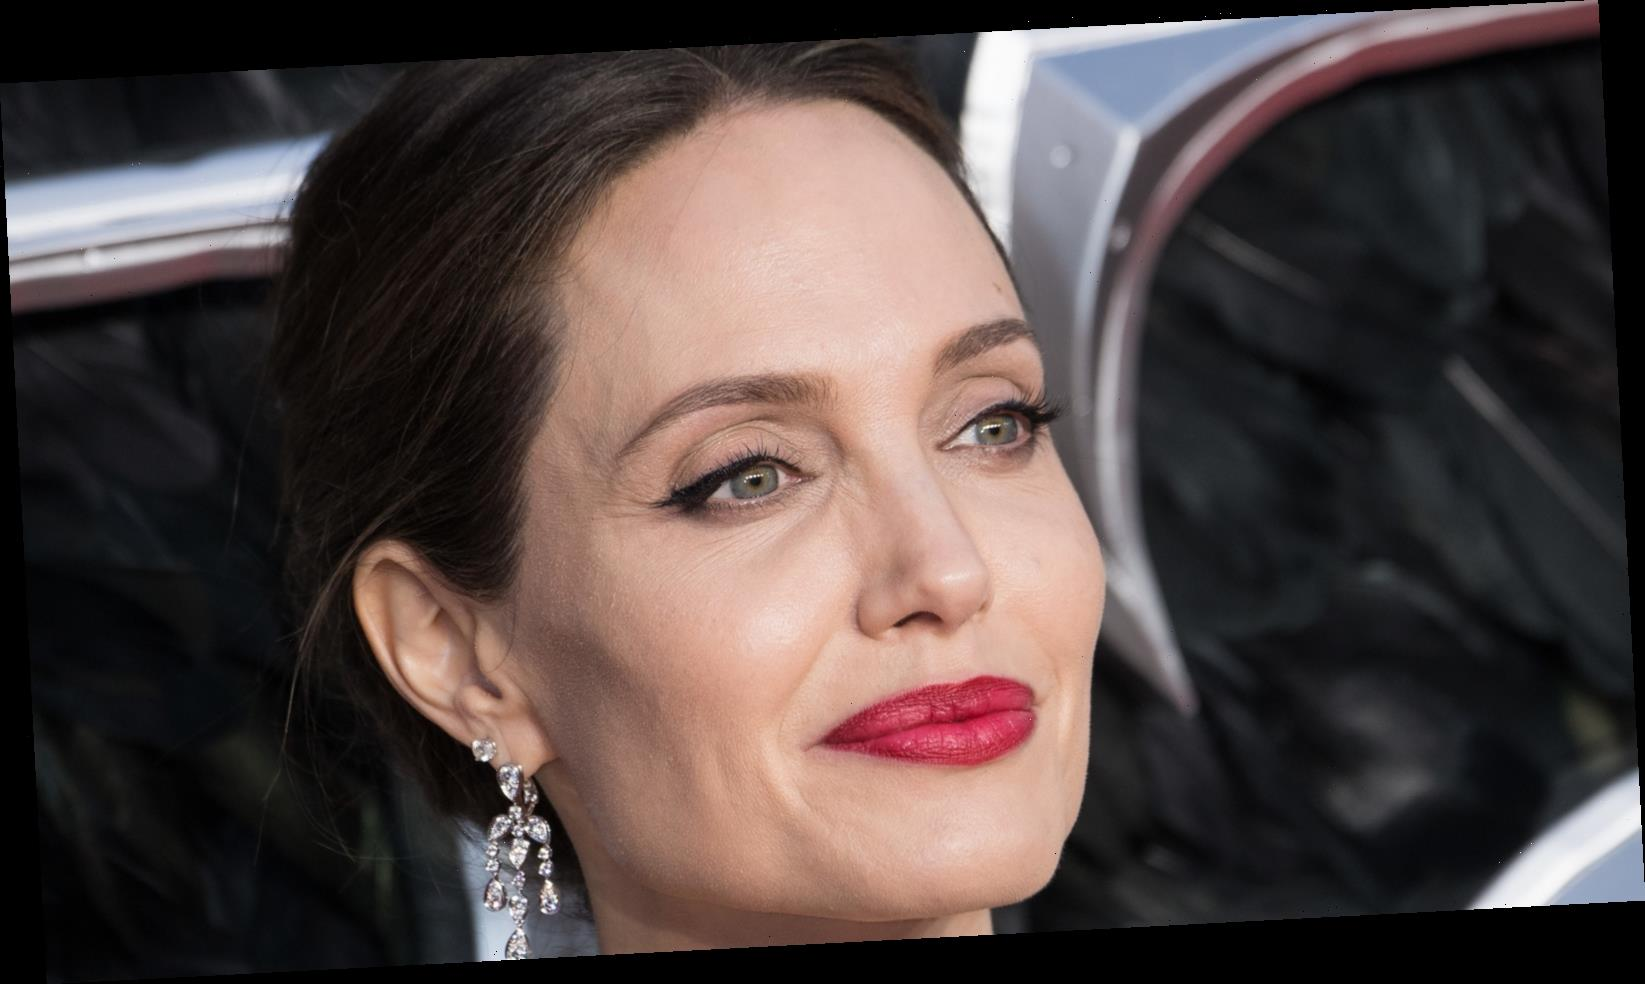 Angelina Jolie's Surprising Thoughts On Being A Stay-At-Home Mom